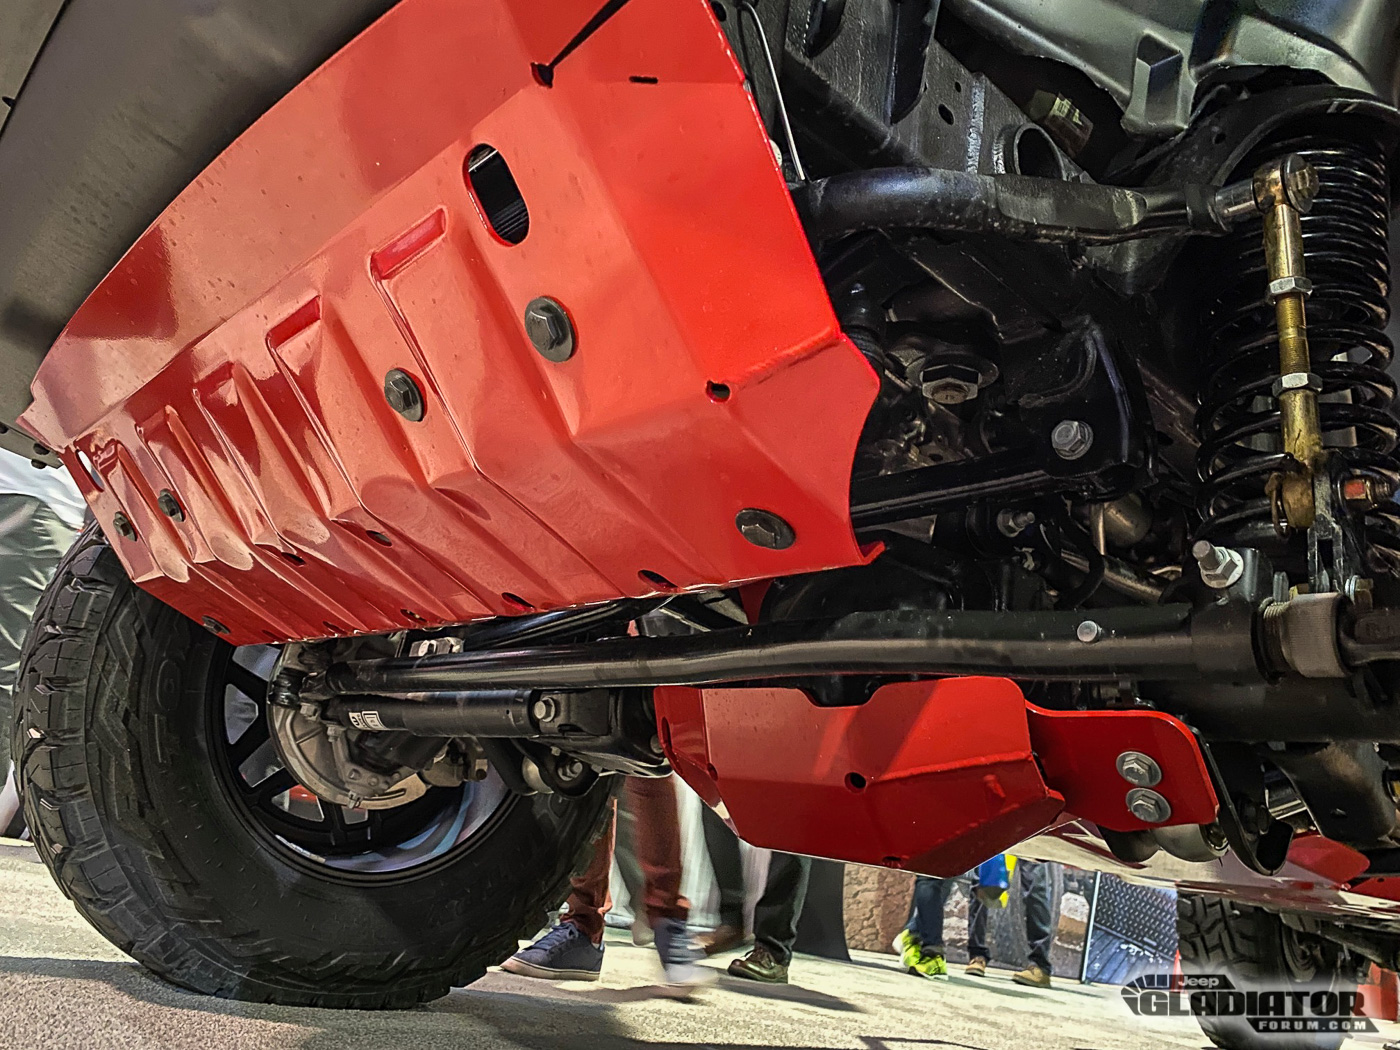 DeeZee-Gladiator-Build-SEMA-2019-2.jpg